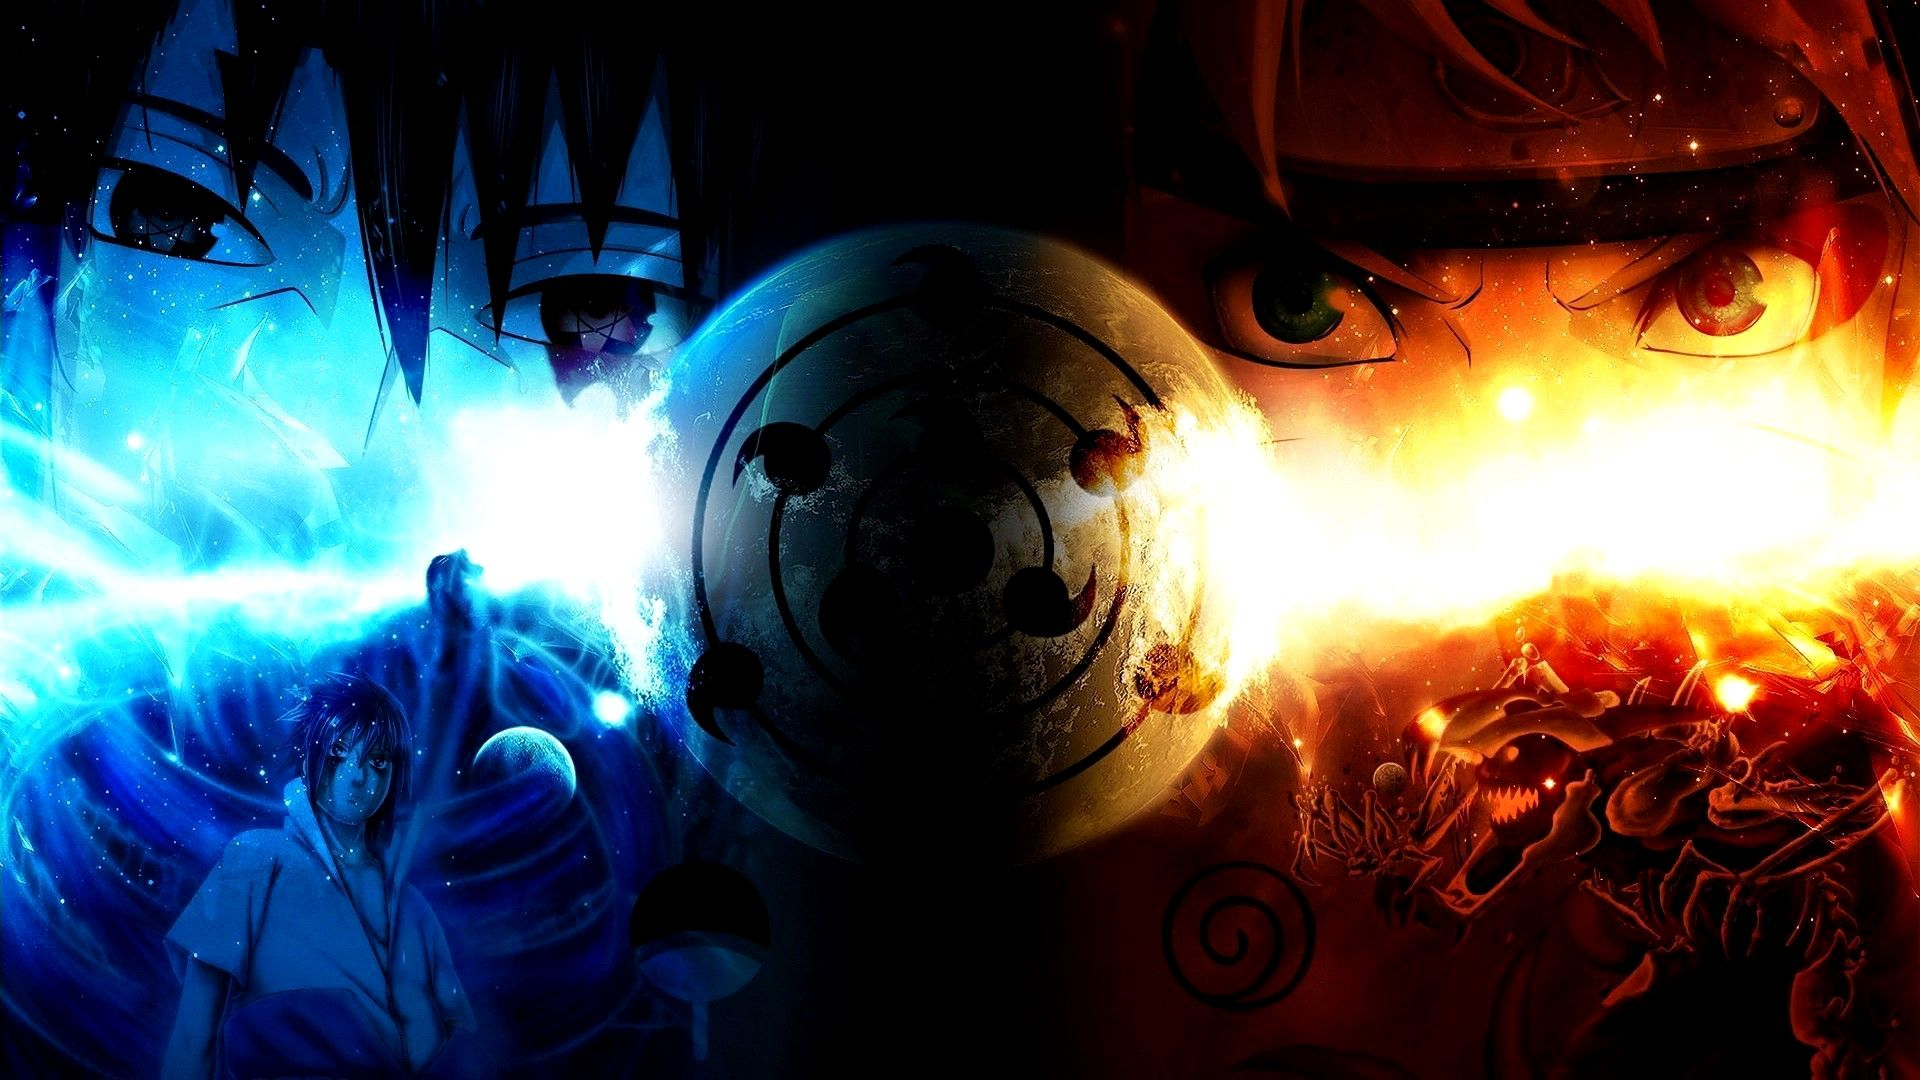 Naruto Shippuden Wallpaper 4k Pc Gallery Check More At Https